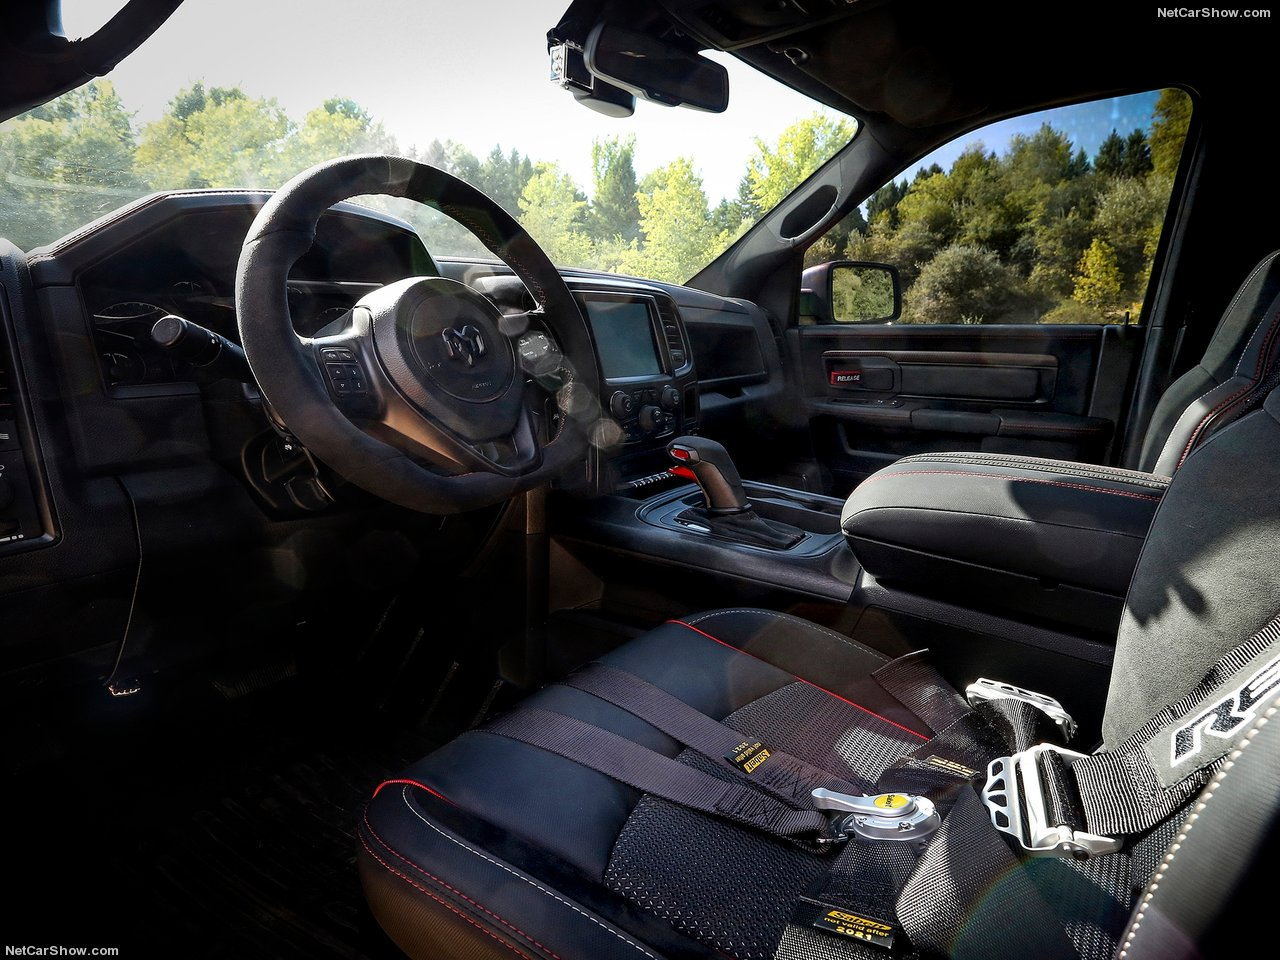 They even put six point racing seat belts in the truck! Photo: netcarshow